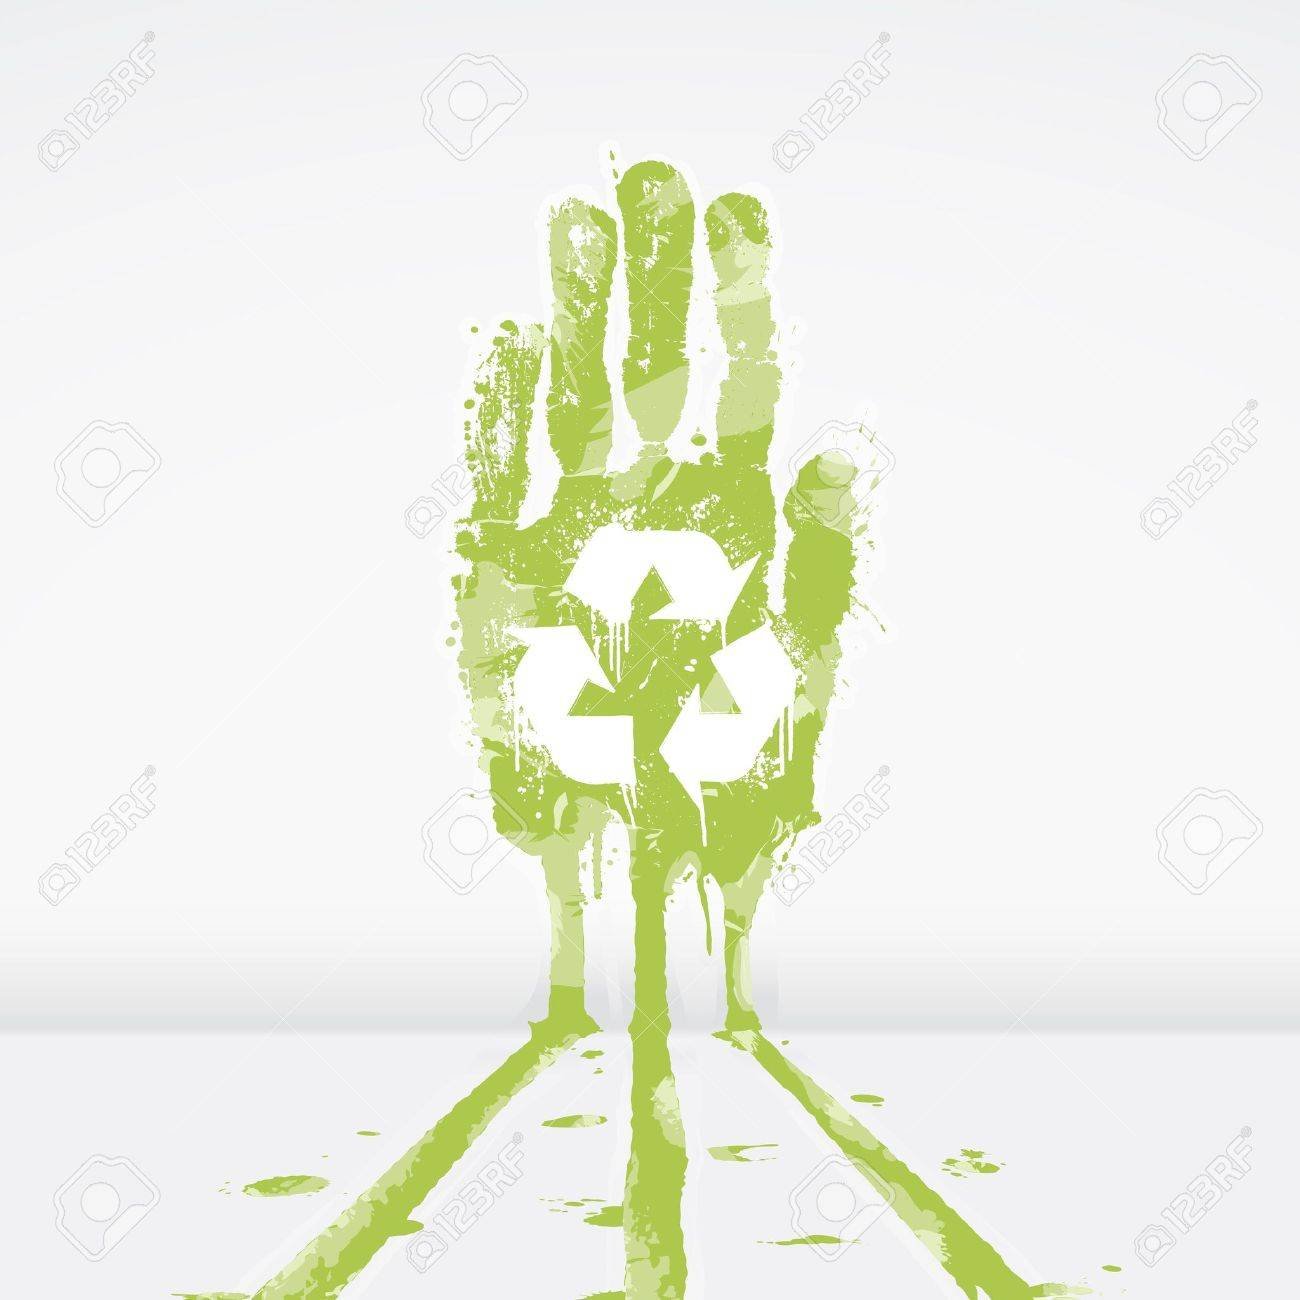 illustration of an ecological concept with a hand splatter leaking dye down a wall. Recycling symbol in the middle. - 6953225